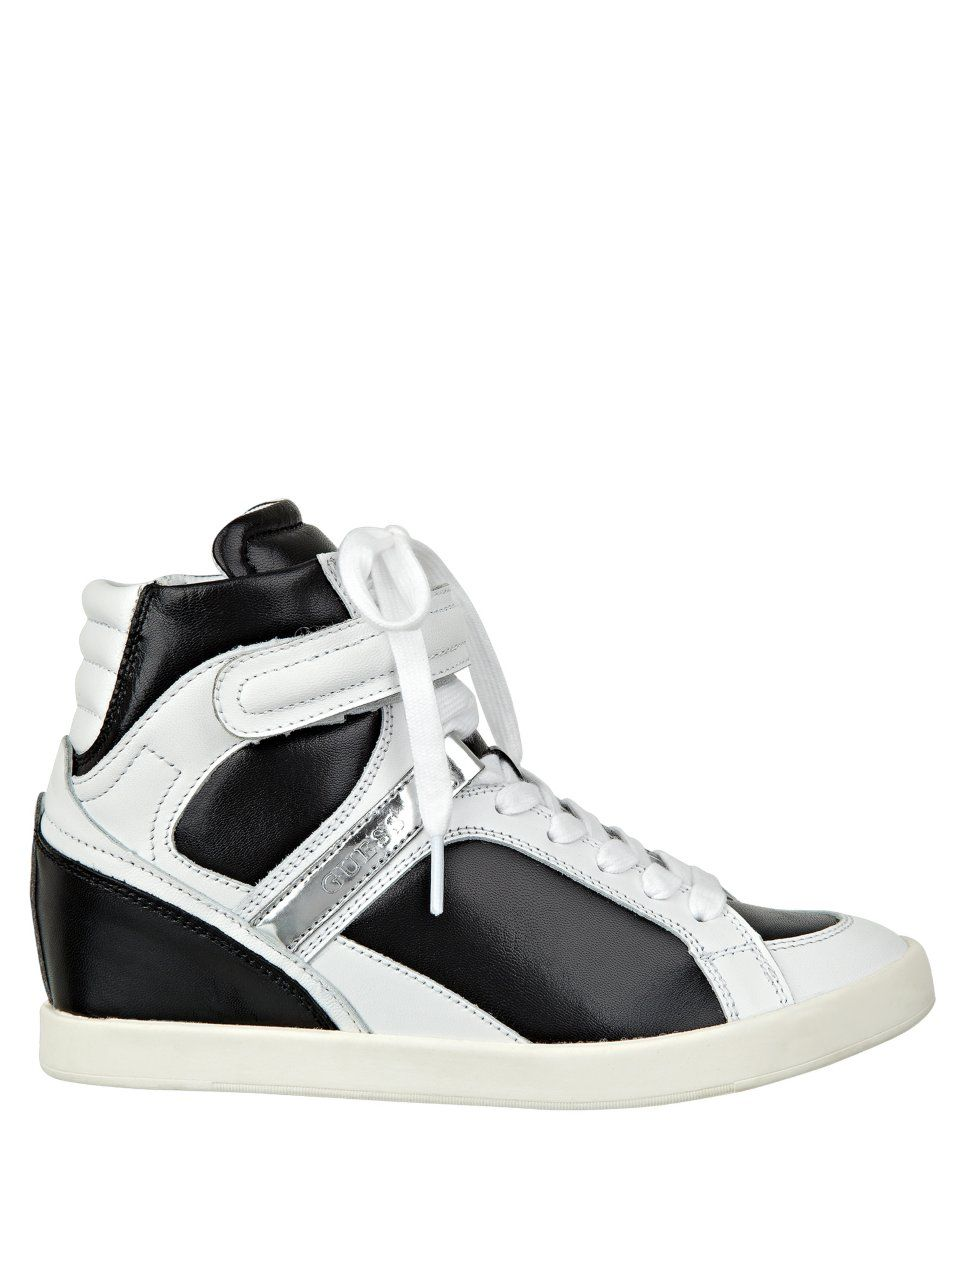 GUESS Perina Wedge Sneakers, BLACK MULTI LEATHER (7 1/2)